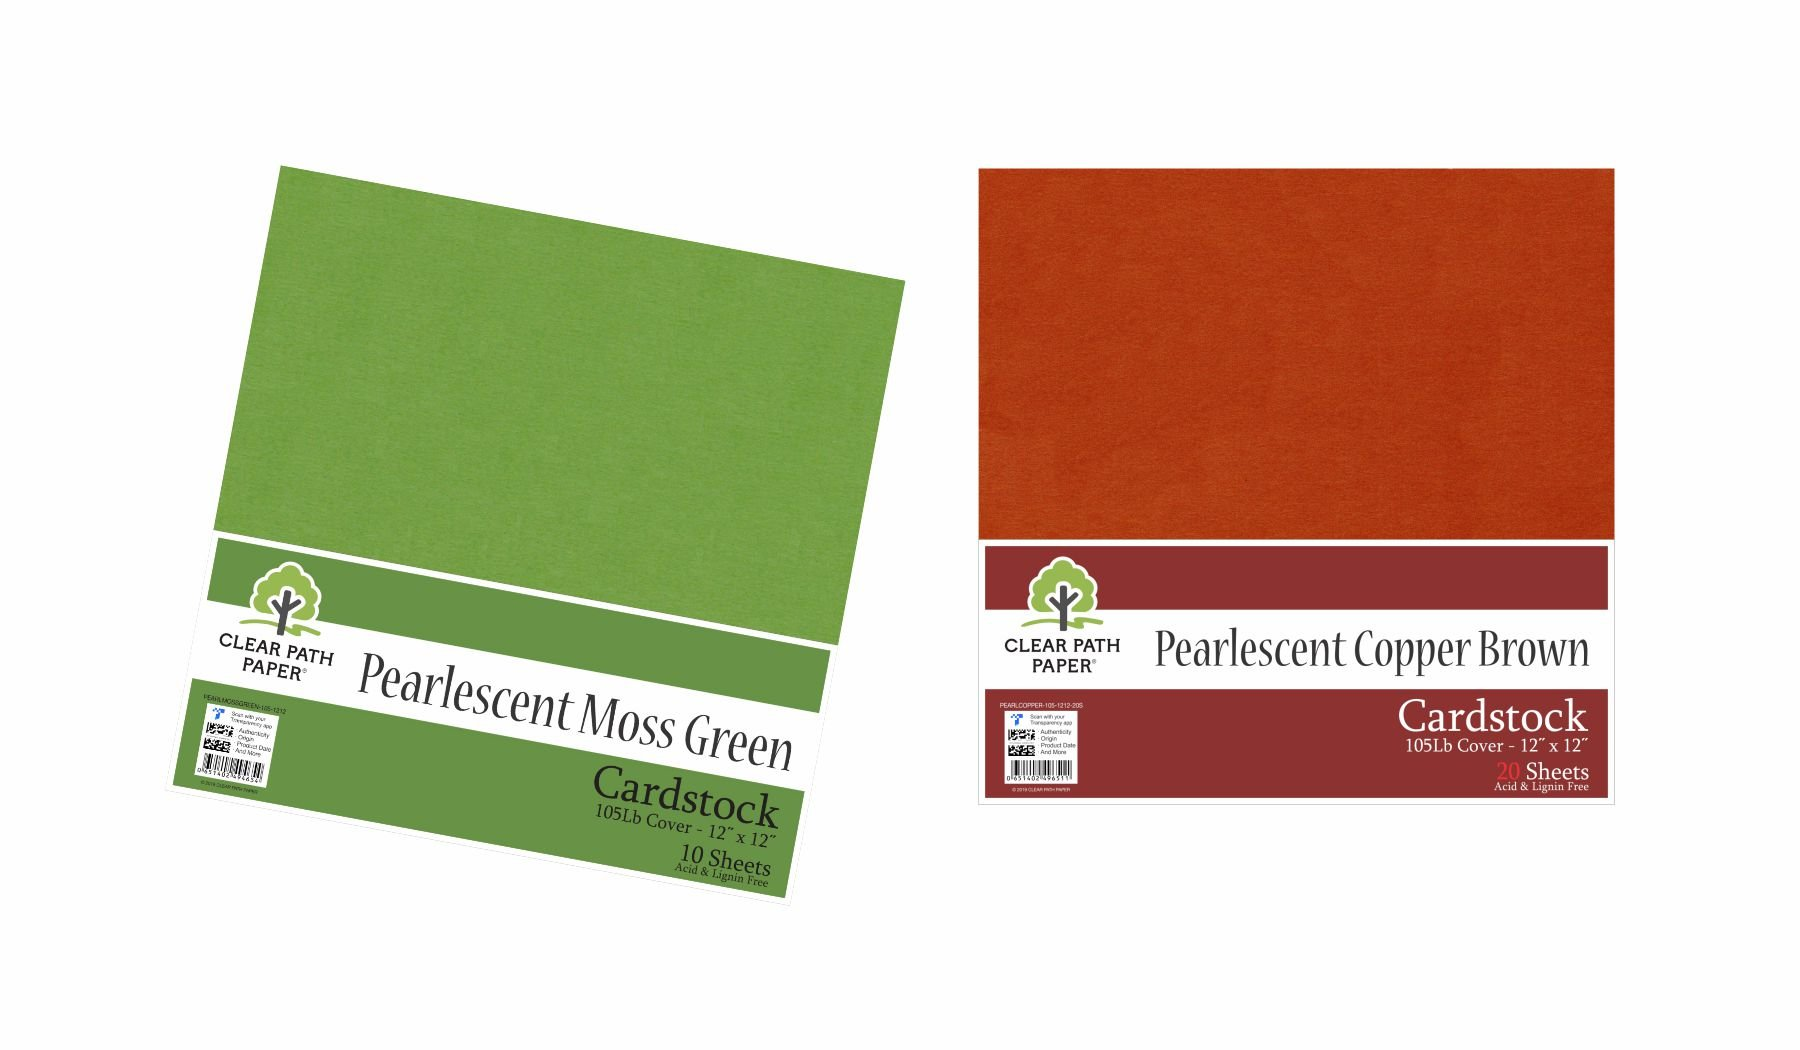 Image of an Amazon bundle of Pearlescent Moss Green and Pearlescent Copper Brown cardstock packs